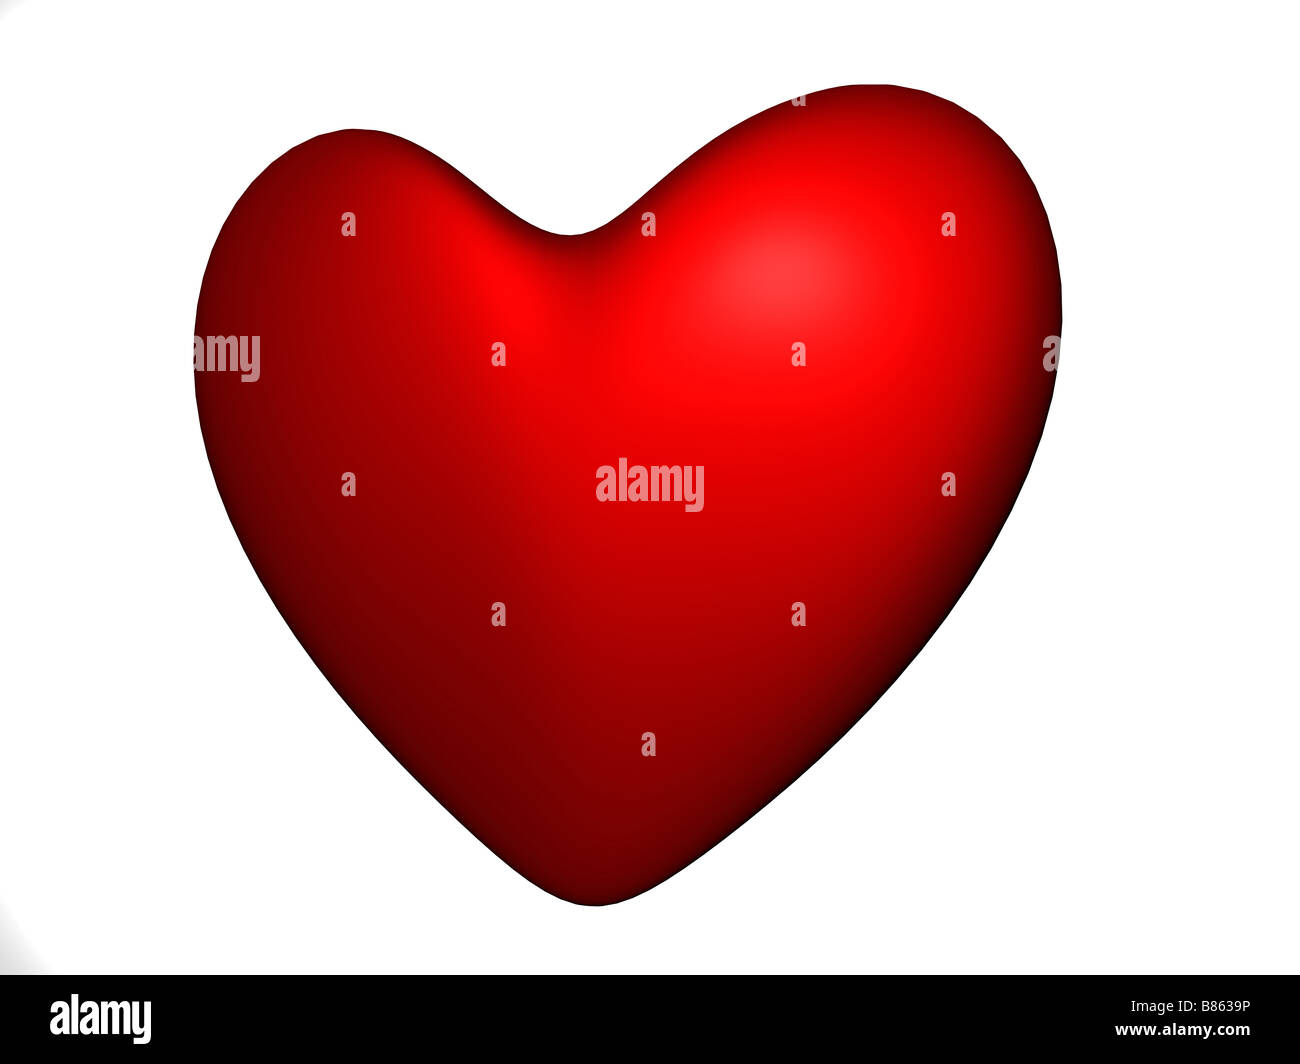 3D render of a red heart - Stock Image